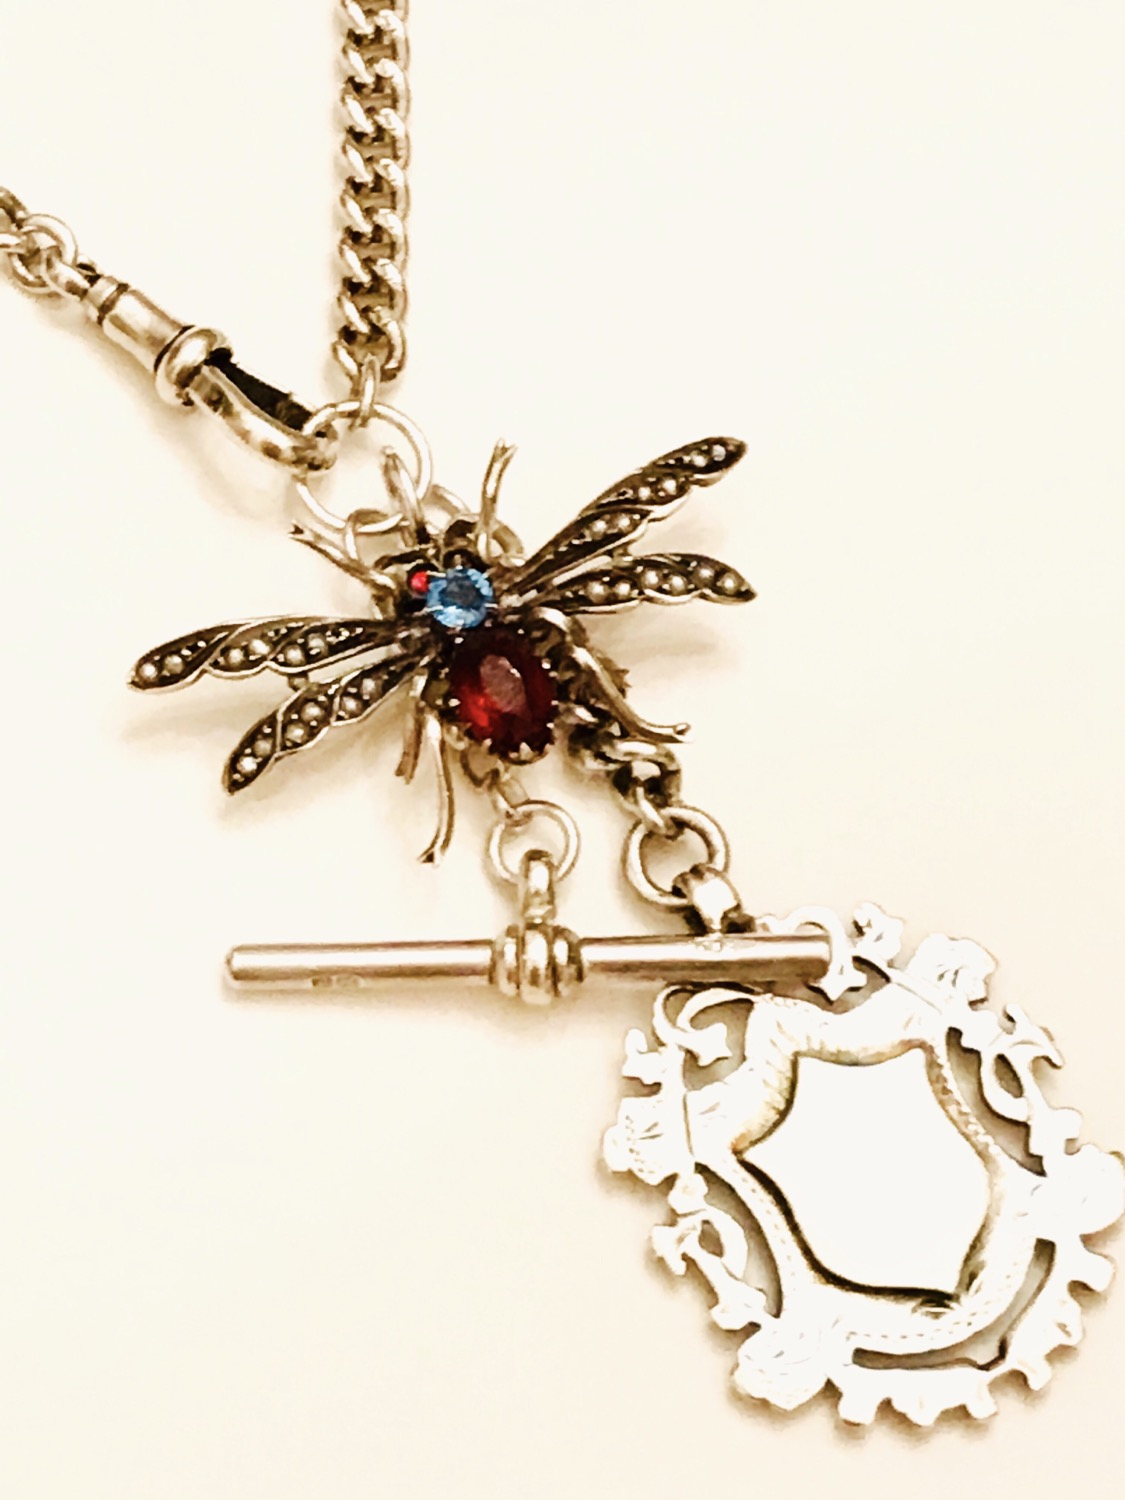 Antique Victorian Silver Watch Chain, Butterfly, Bug, Insect, Fob Charm Necklace